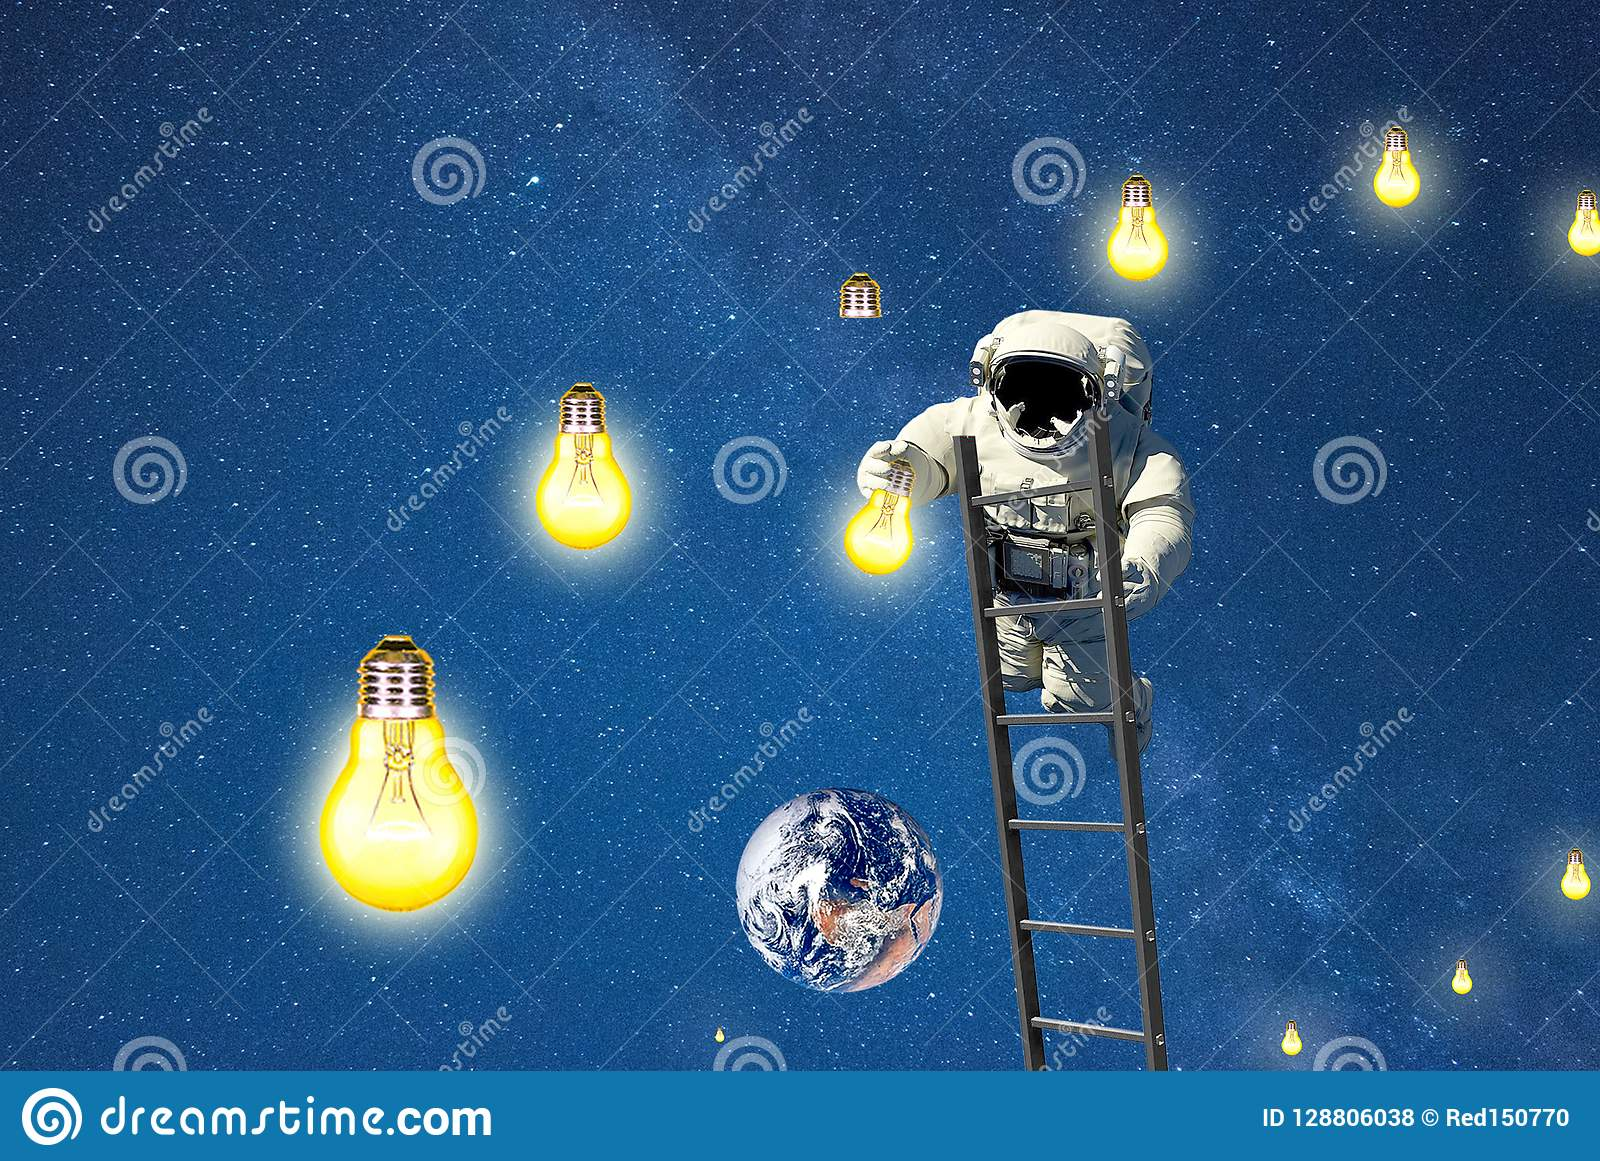 Astronaut Witch Mission Light In Galaxy  Stock Photo - Image